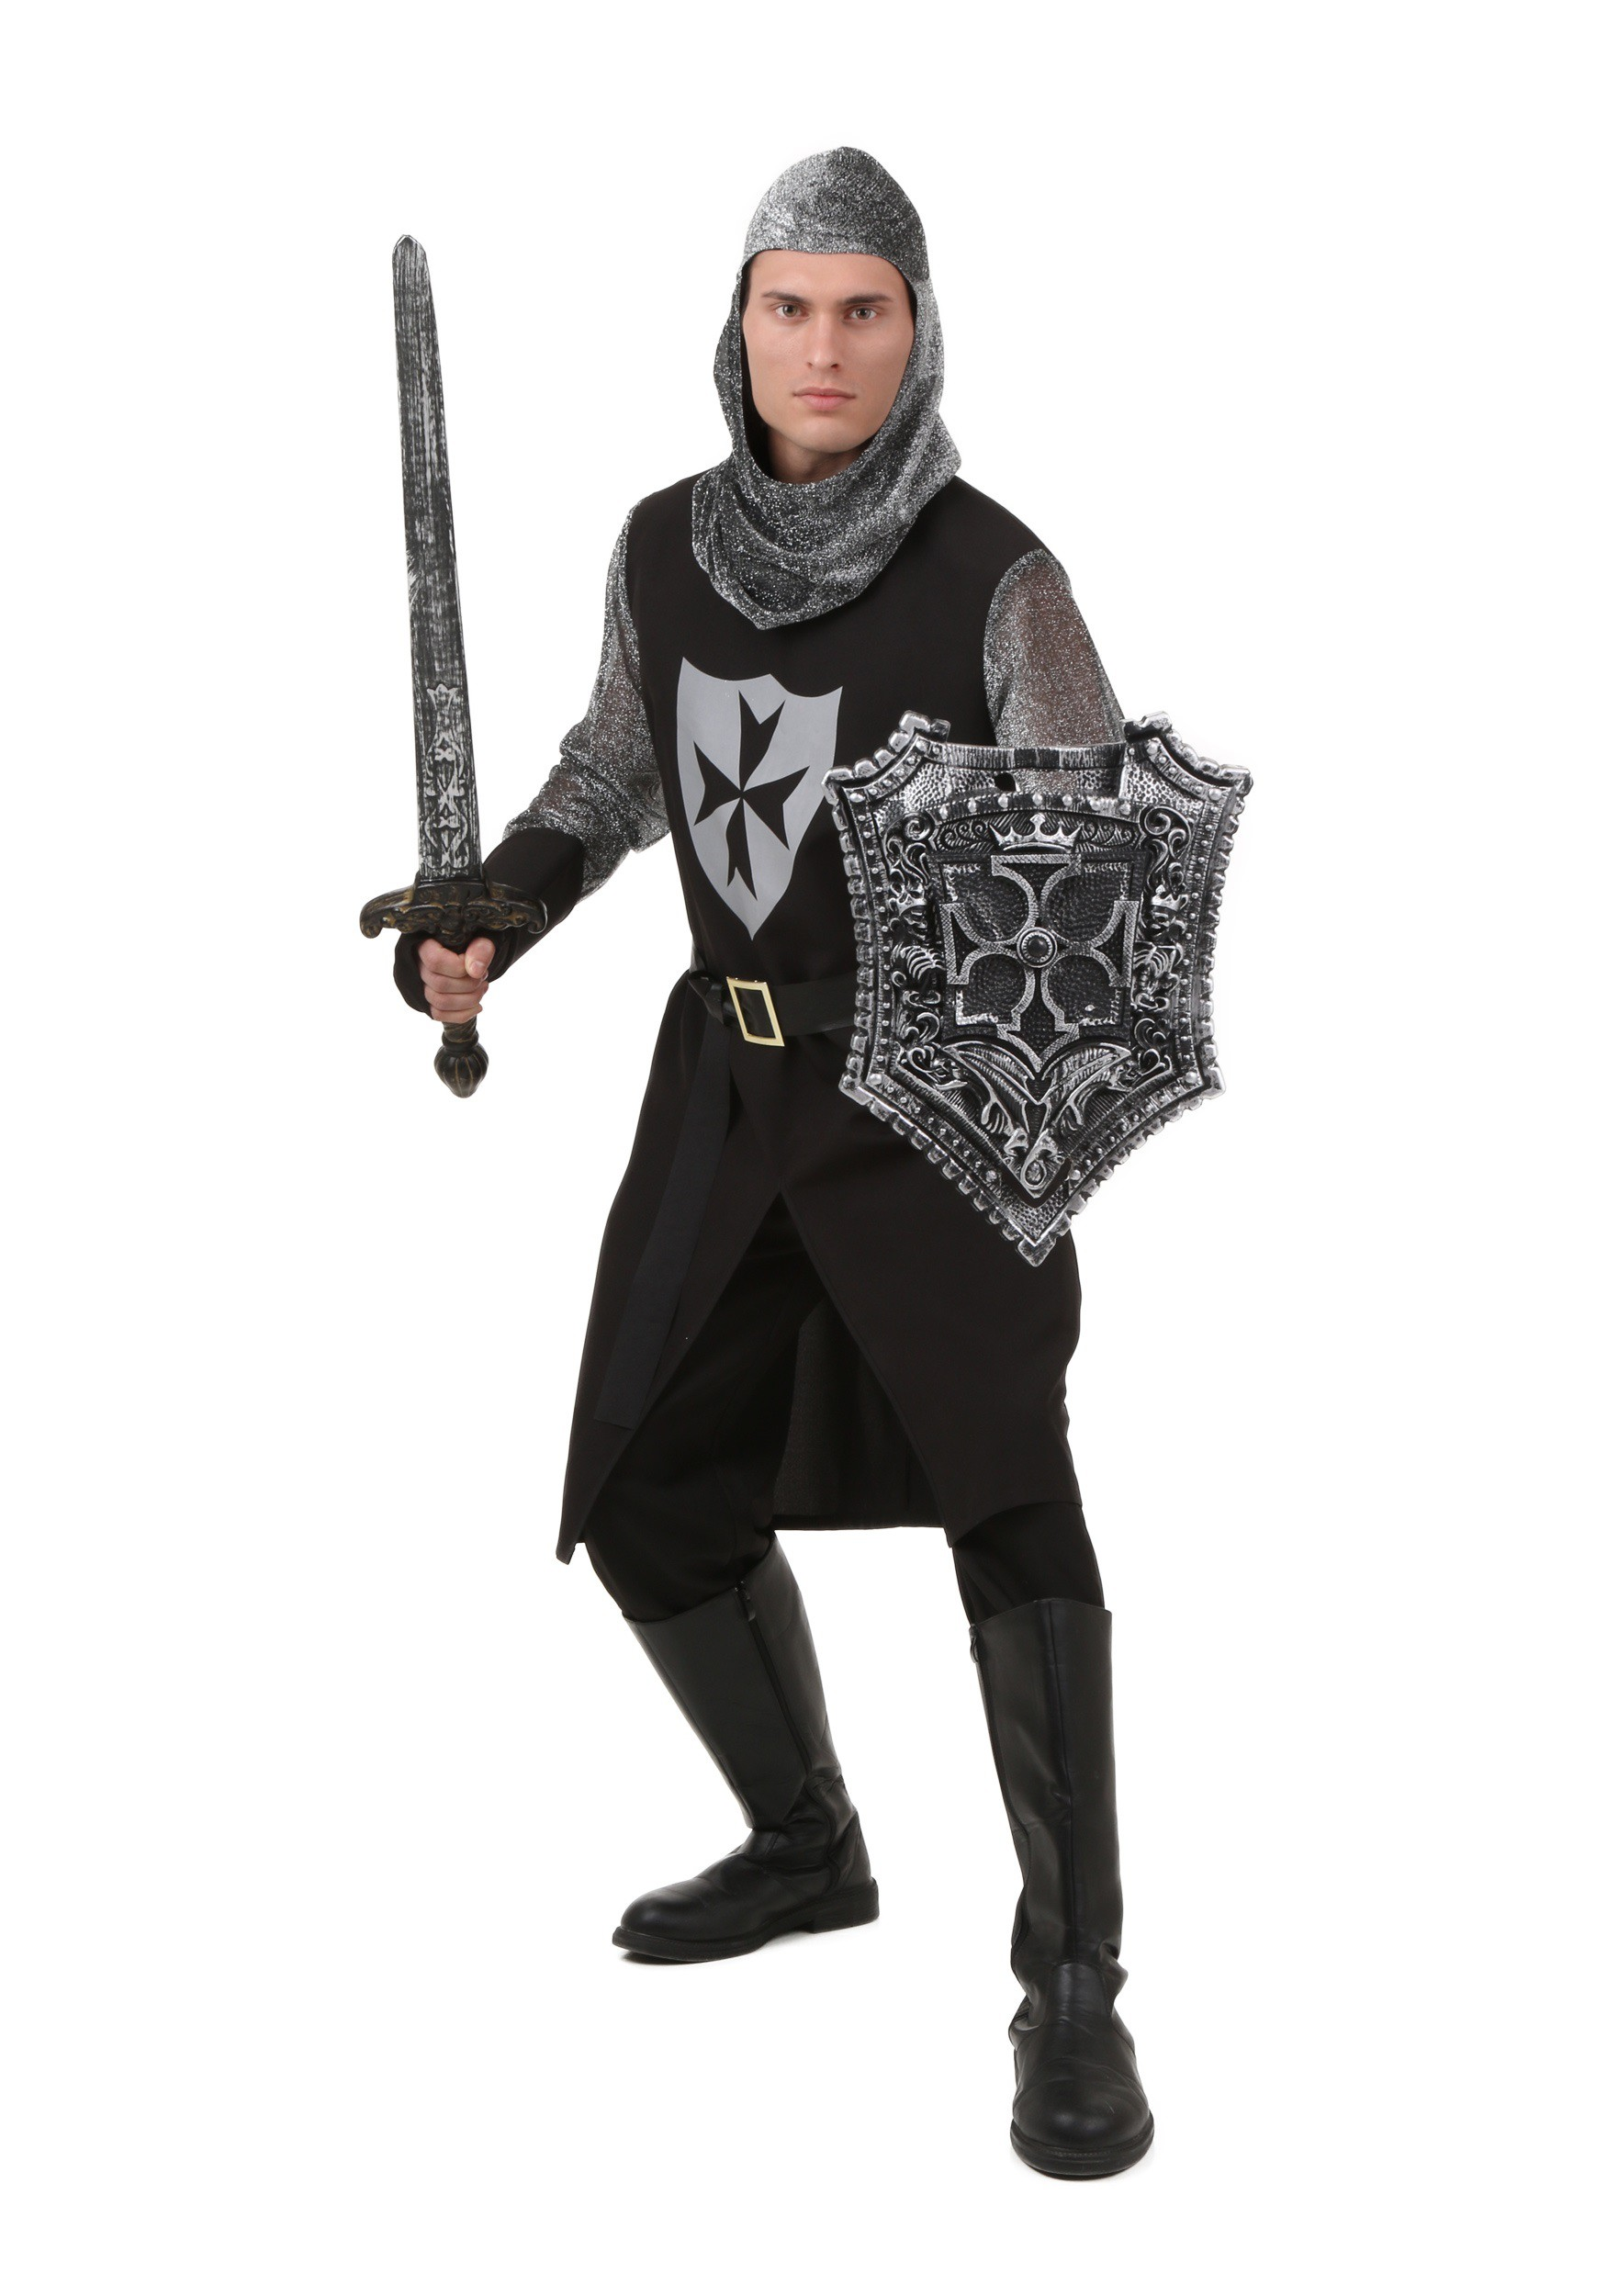 Adult Black Knight Costume  sc 1 st  Halloween Costumes : knights templar costume authentic  - Germanpascual.Com